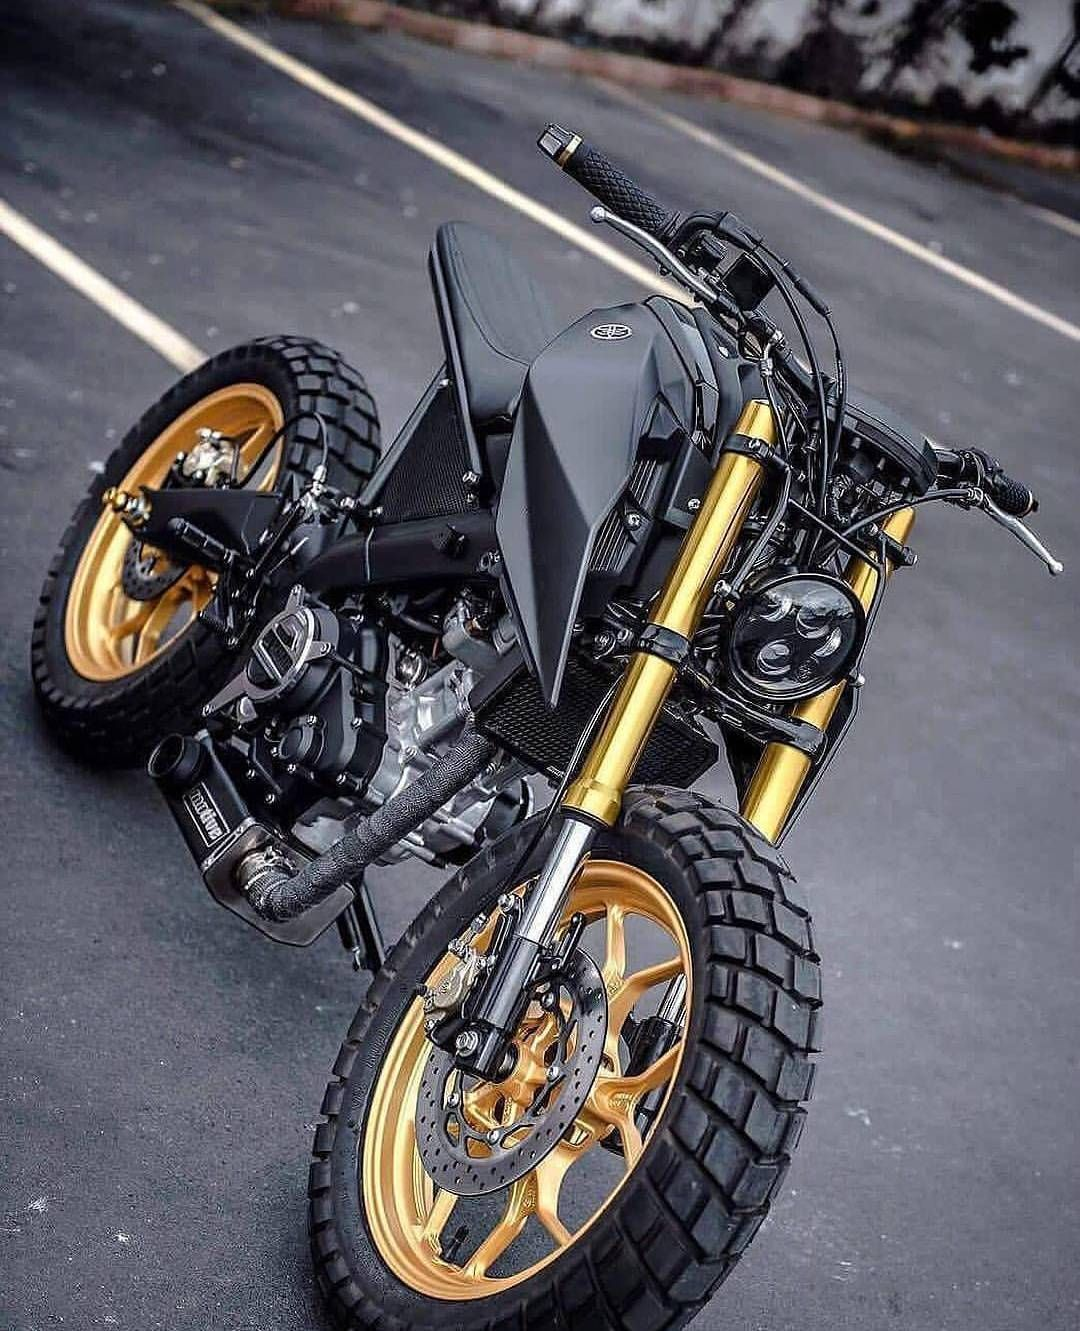 9 970 Likes 35 Comments Cafe Racers Customs Bikes Kaferacers On Instagram Everyone Loves A Great Ride Like This Well We Do Don 39 T You Motorcycle